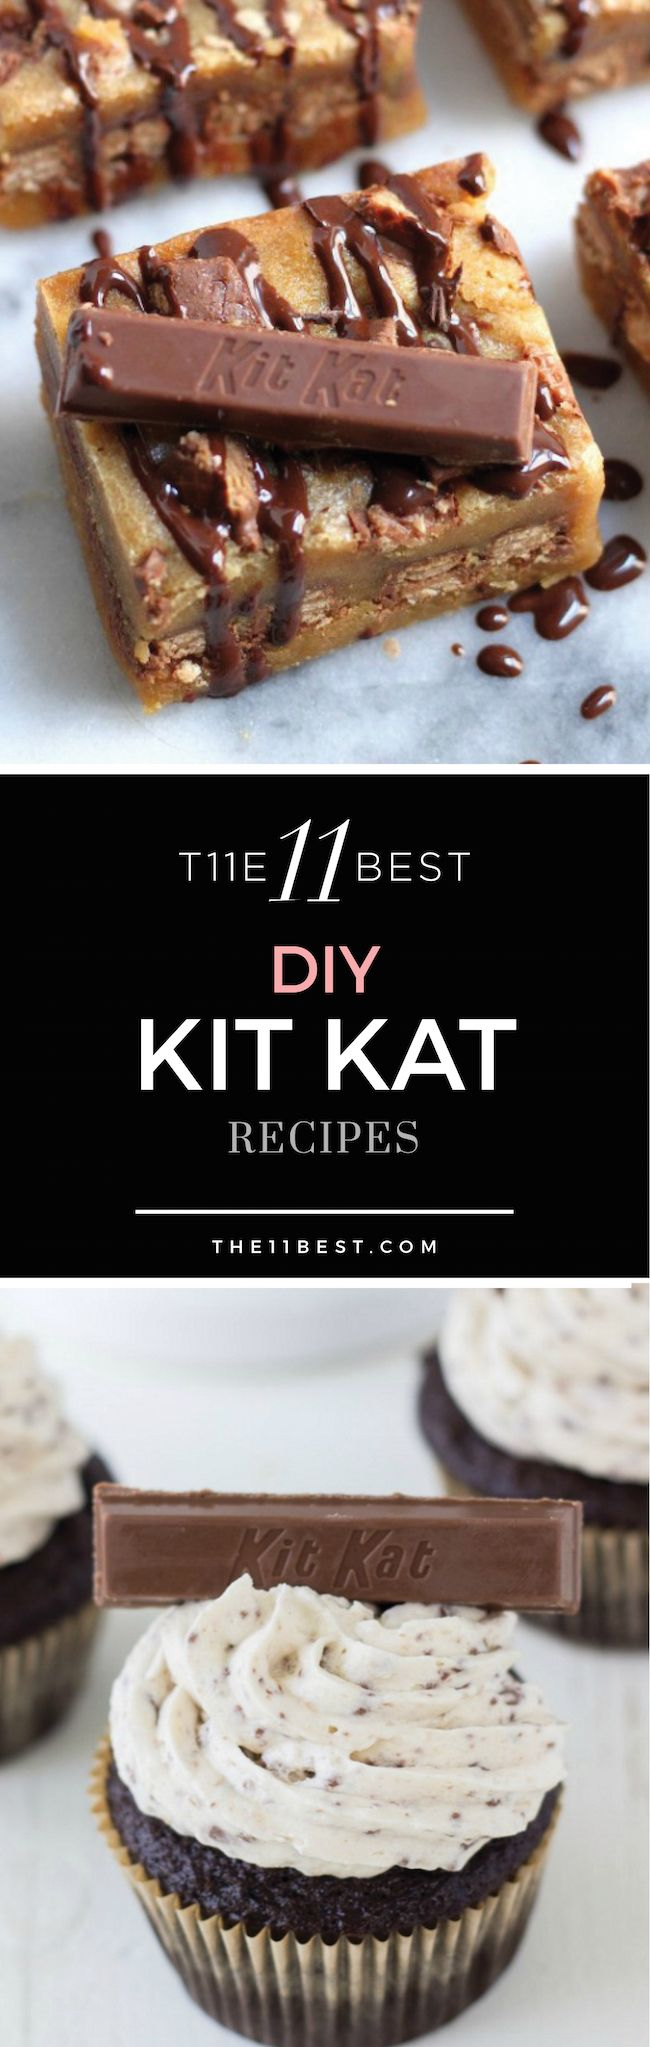 Homemade Kit Kat recipes and ideas.